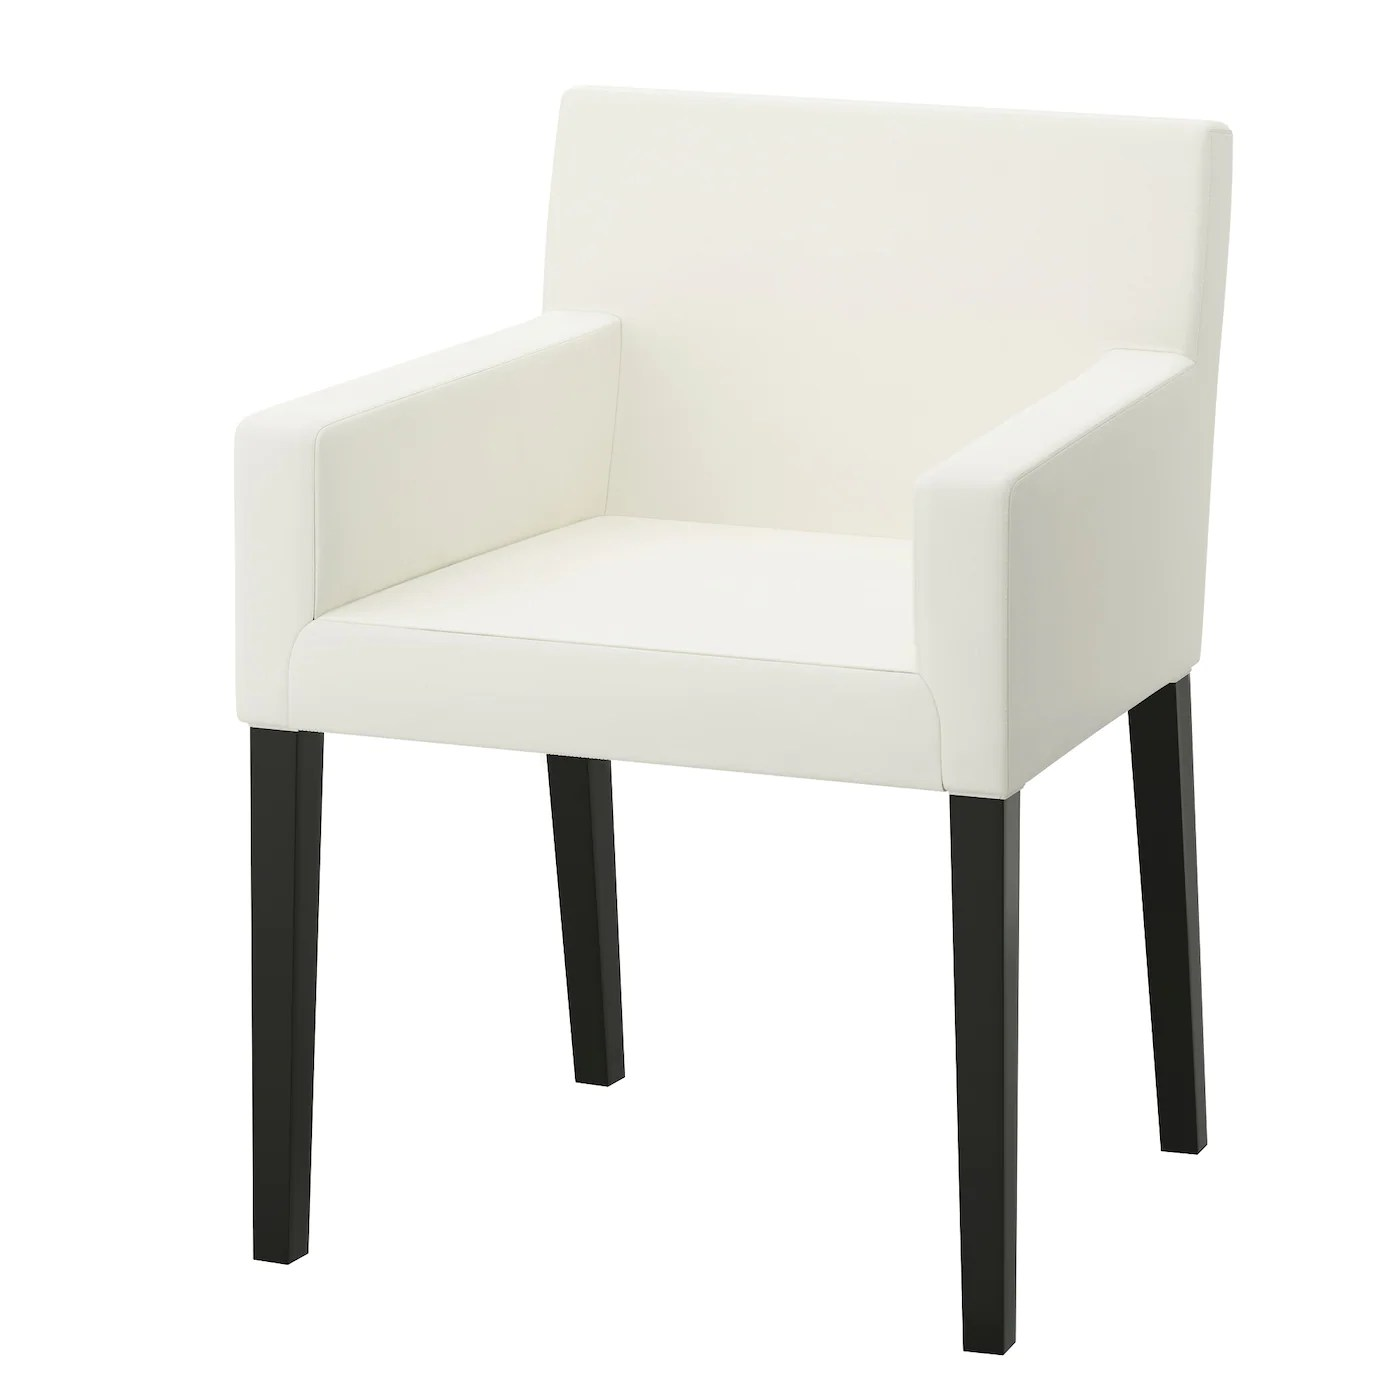 White Chair Ikea Nils Chair With Armrests Black Blekinge White Ikea